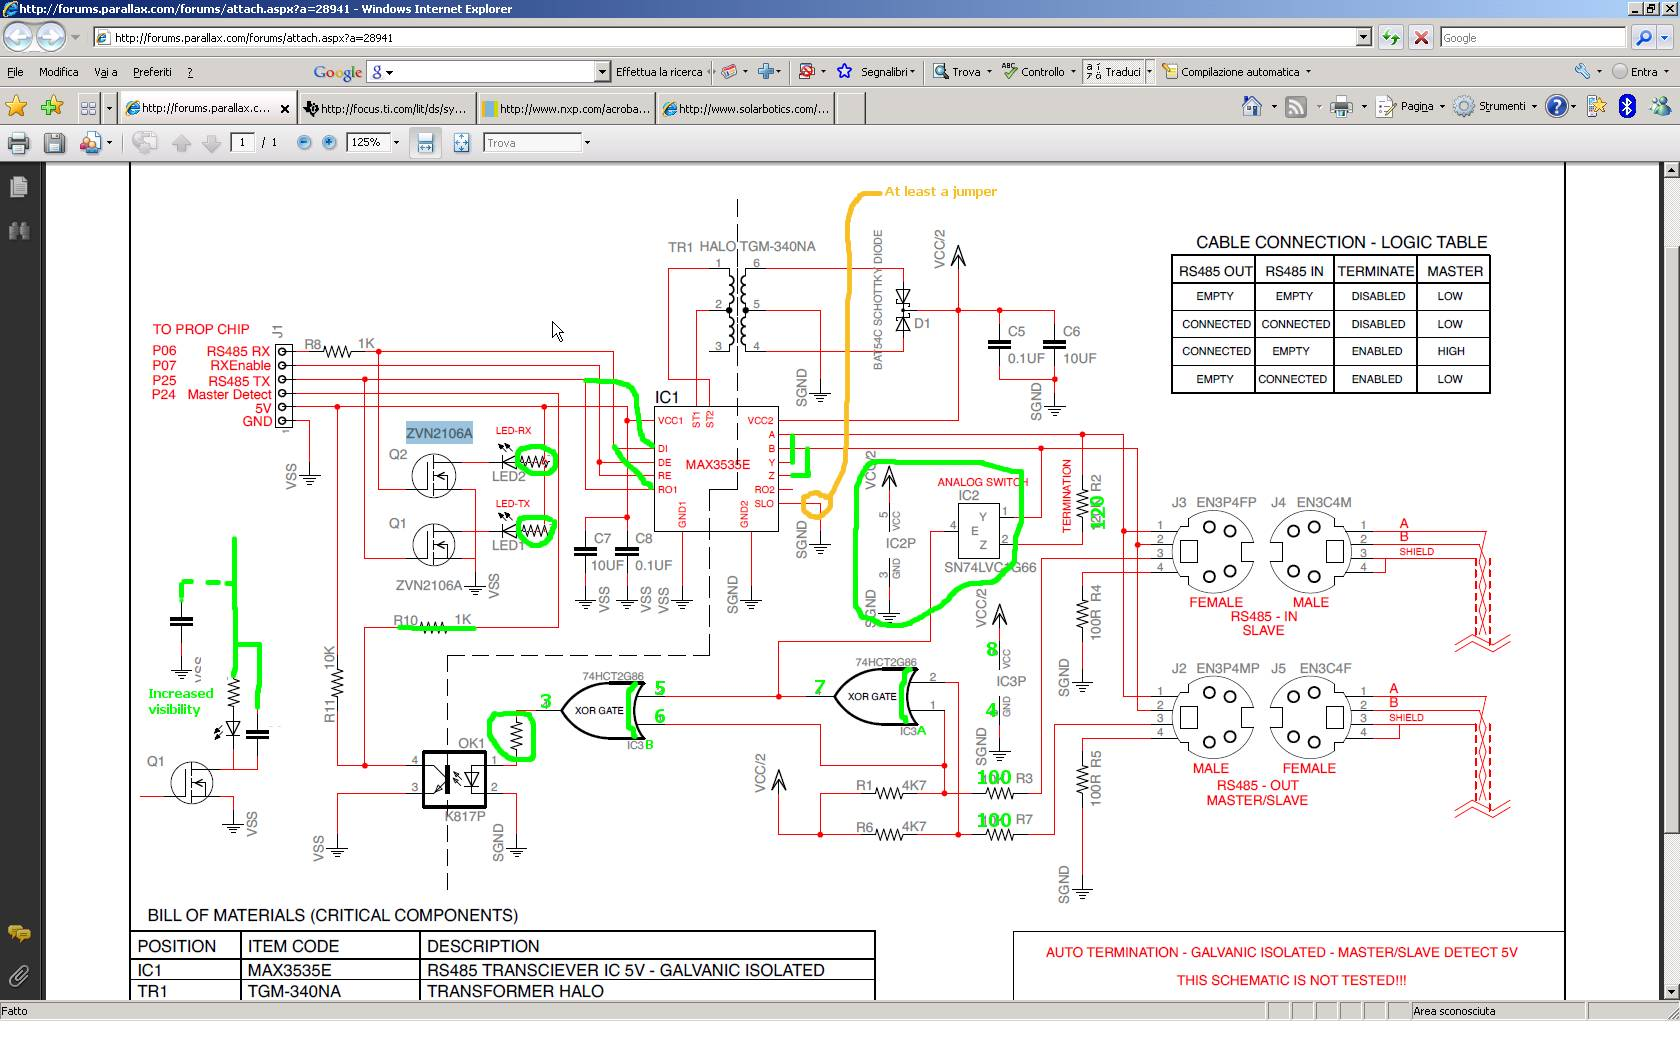 Awesome Ptz Rs485 Wiring Composition - Schematic diagram and wiring ...